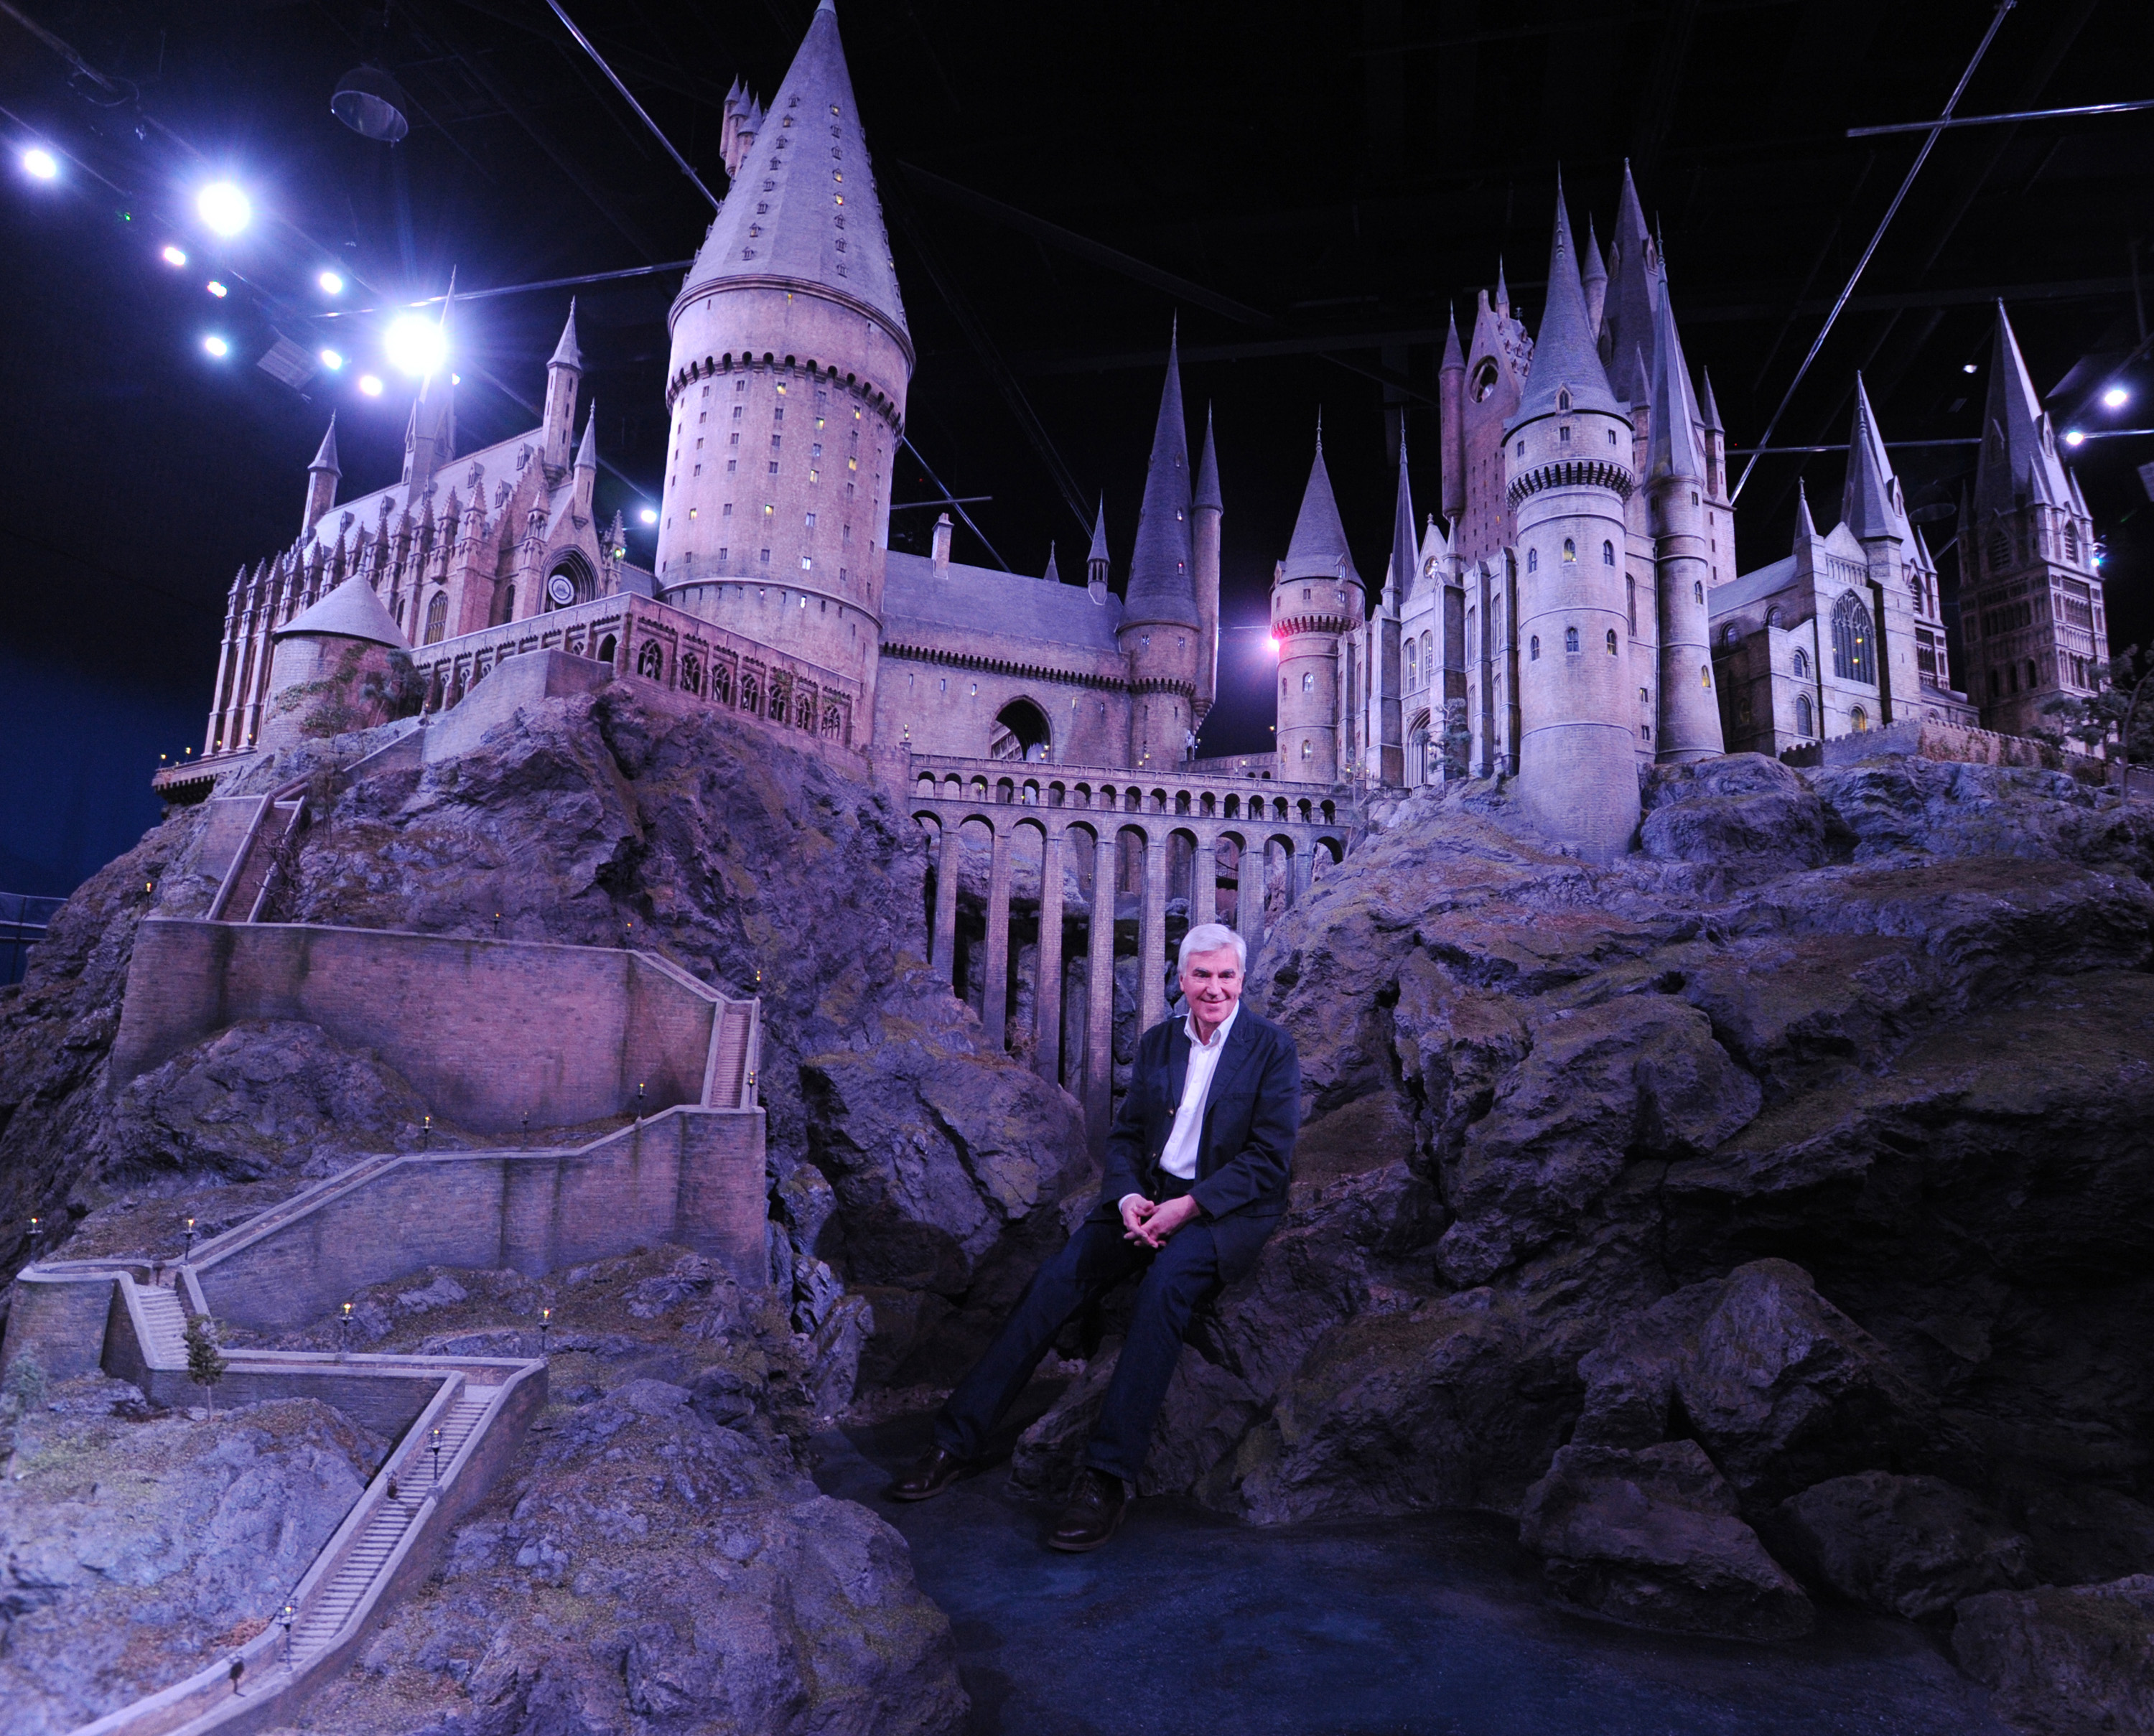 Production designer Stuart Craig, in front of the famous Hogwarts castle model at Warner Bros. Studio Tour London.